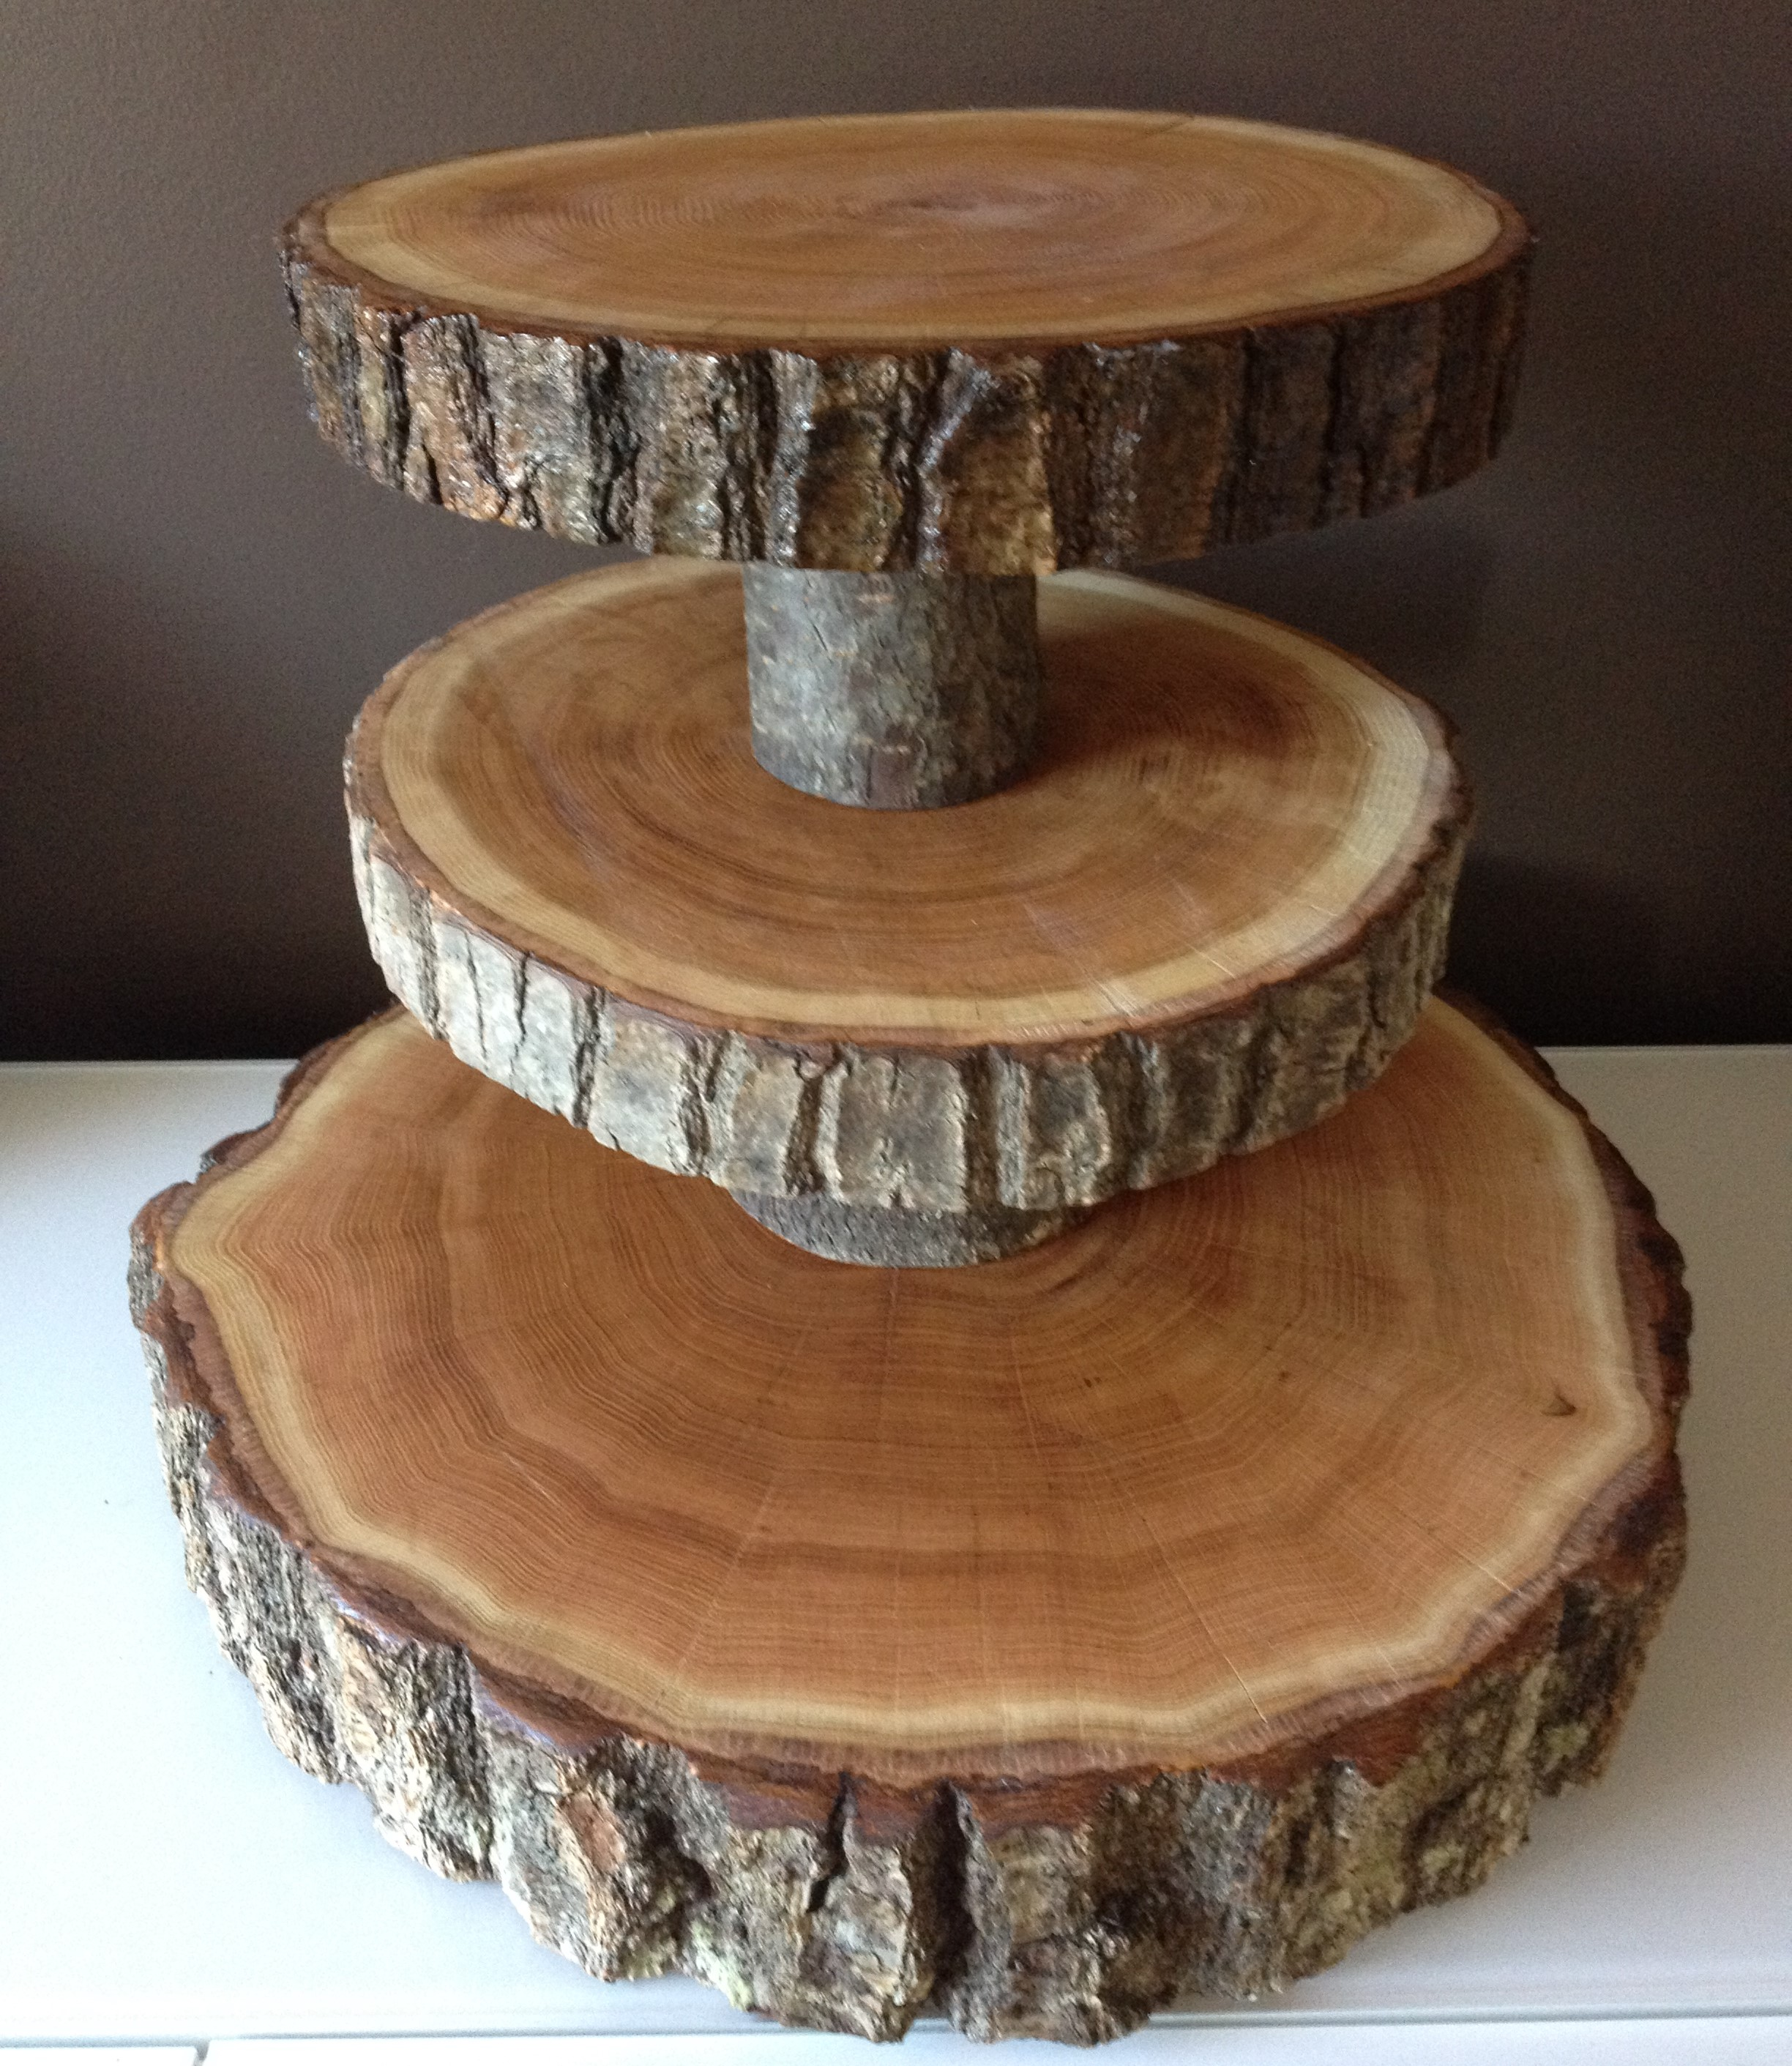 Wood Slice Wedding Cake Stands Wood Rounds Stump Cake Stand